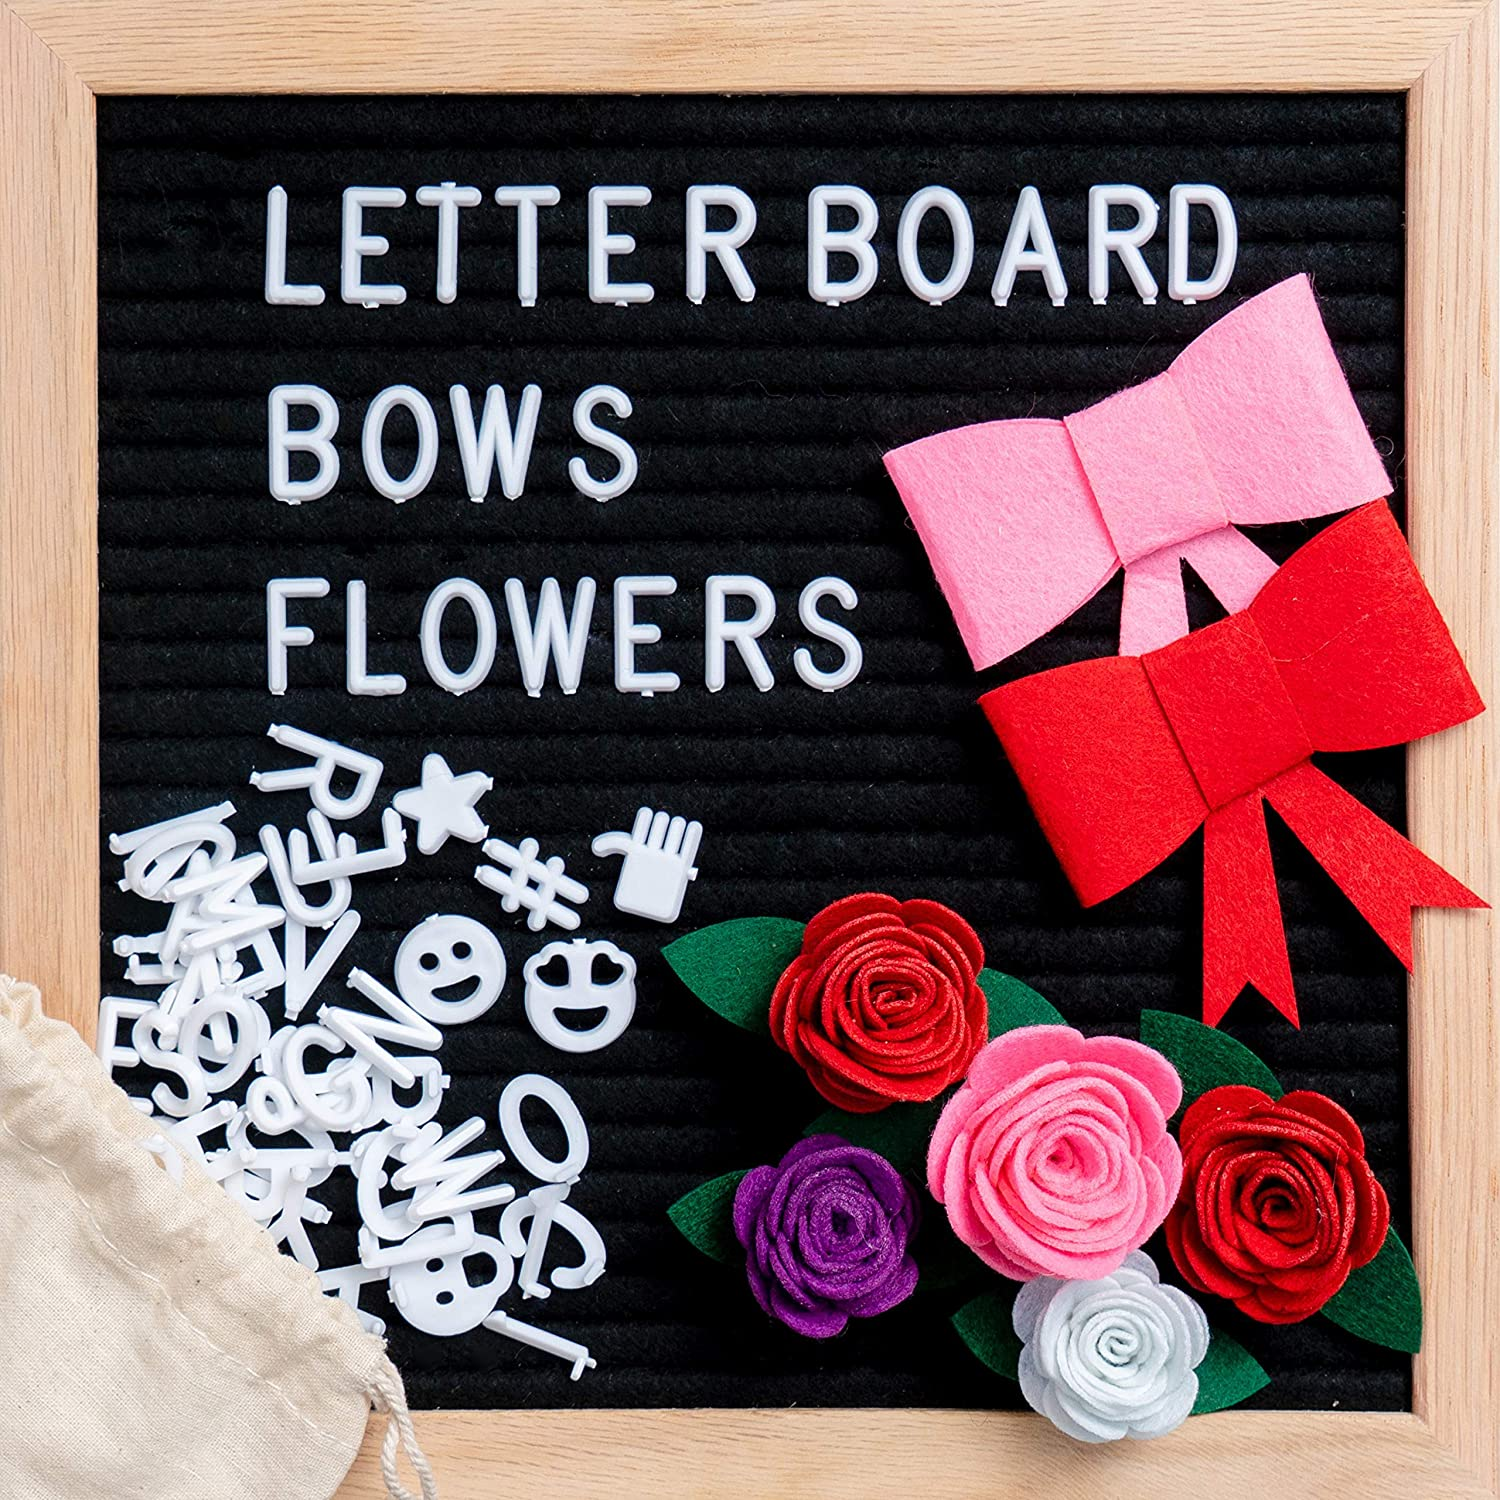 Black Felt Letter Board 10 x 10 inch Changeable Letter Board Bulletin Message - Includes 340+ White Letters Symbols Emojis with Stand, Oak Frame, Felt Flowers, Red Pink Bows, Canvas Bag, Wall Mount. Storilla Store